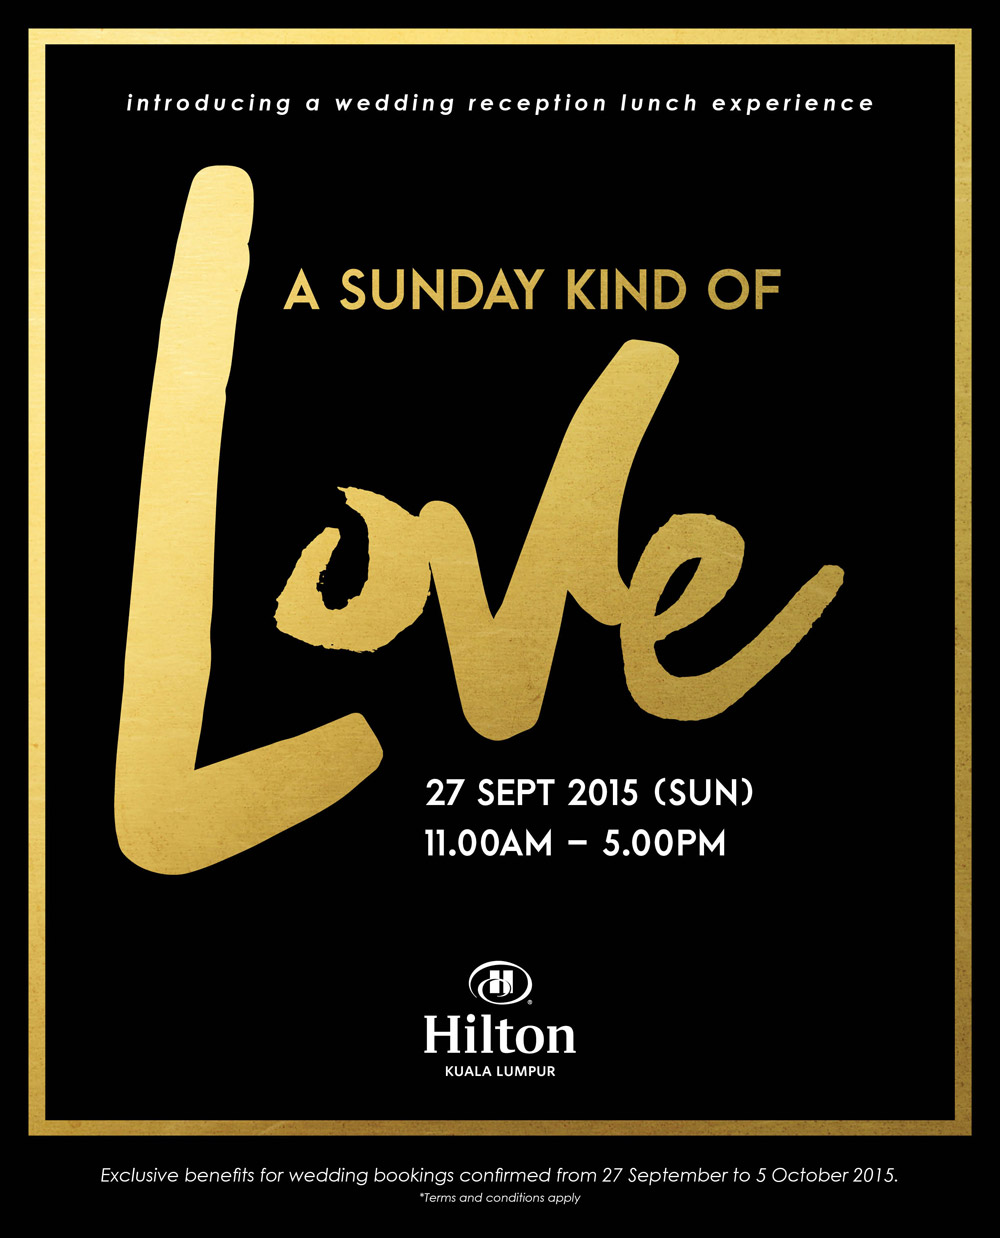 hilton-a-sunday-kind-of-love